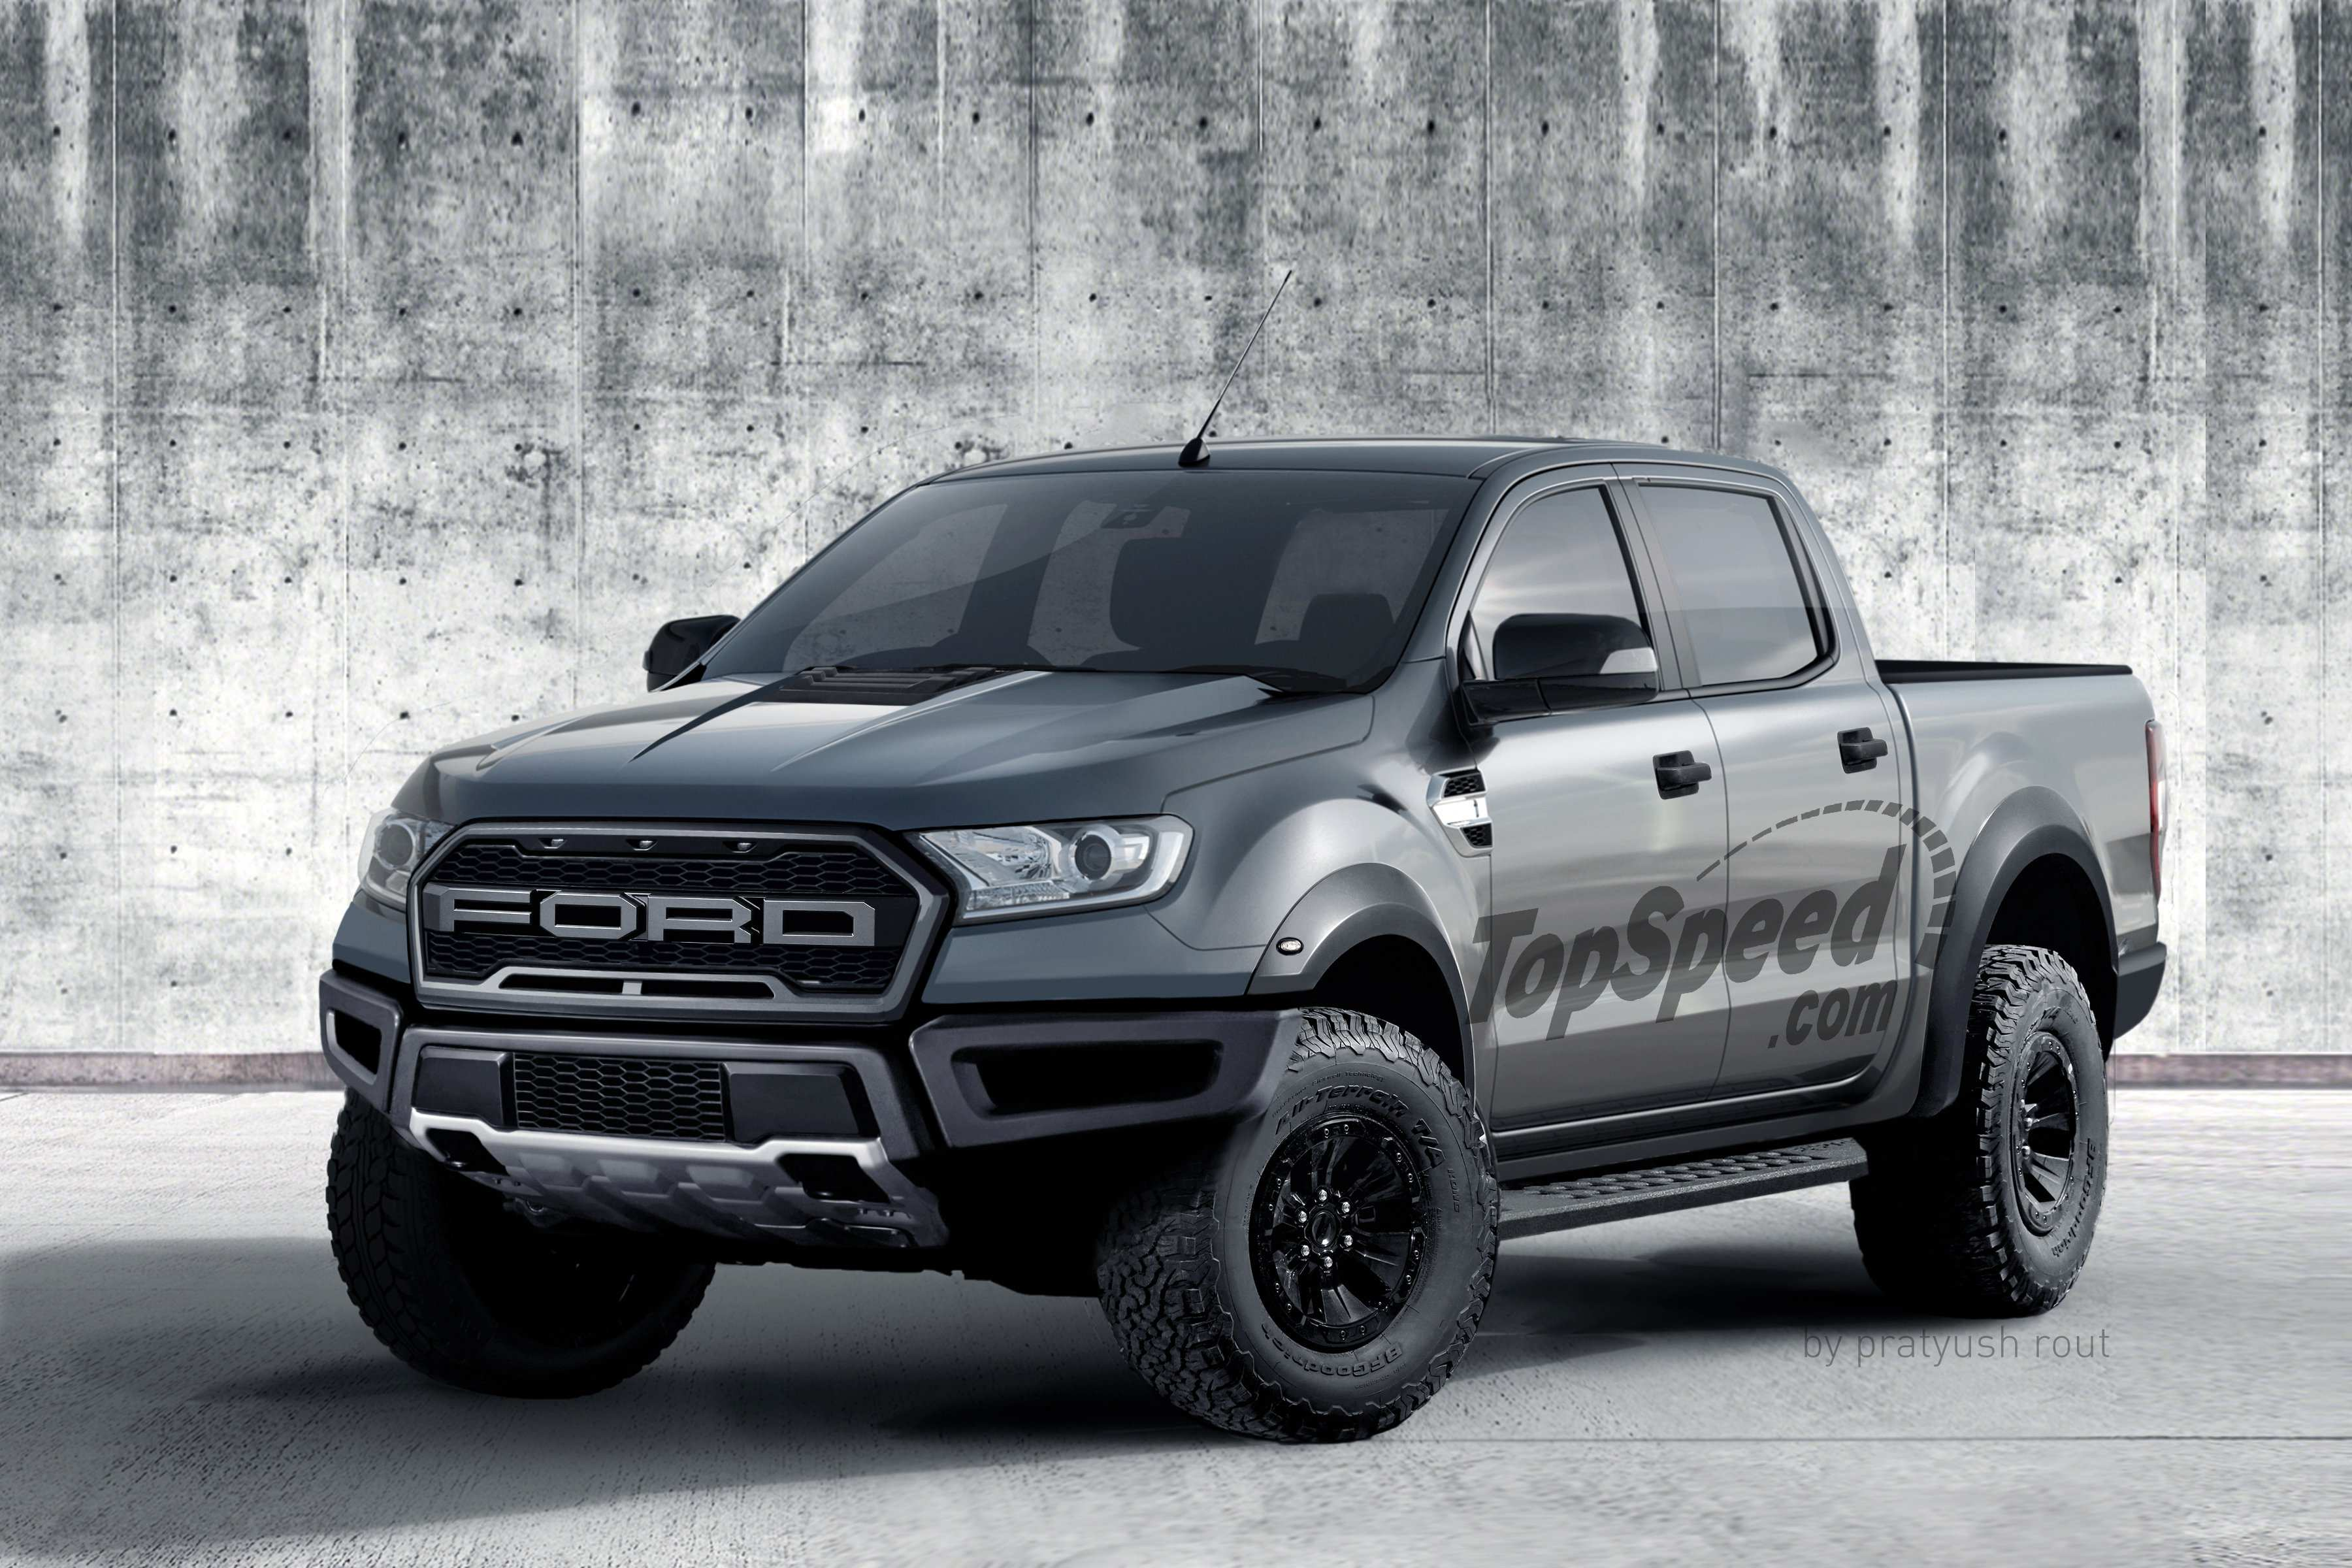 40 All New 2019 Ford Raptor Specs